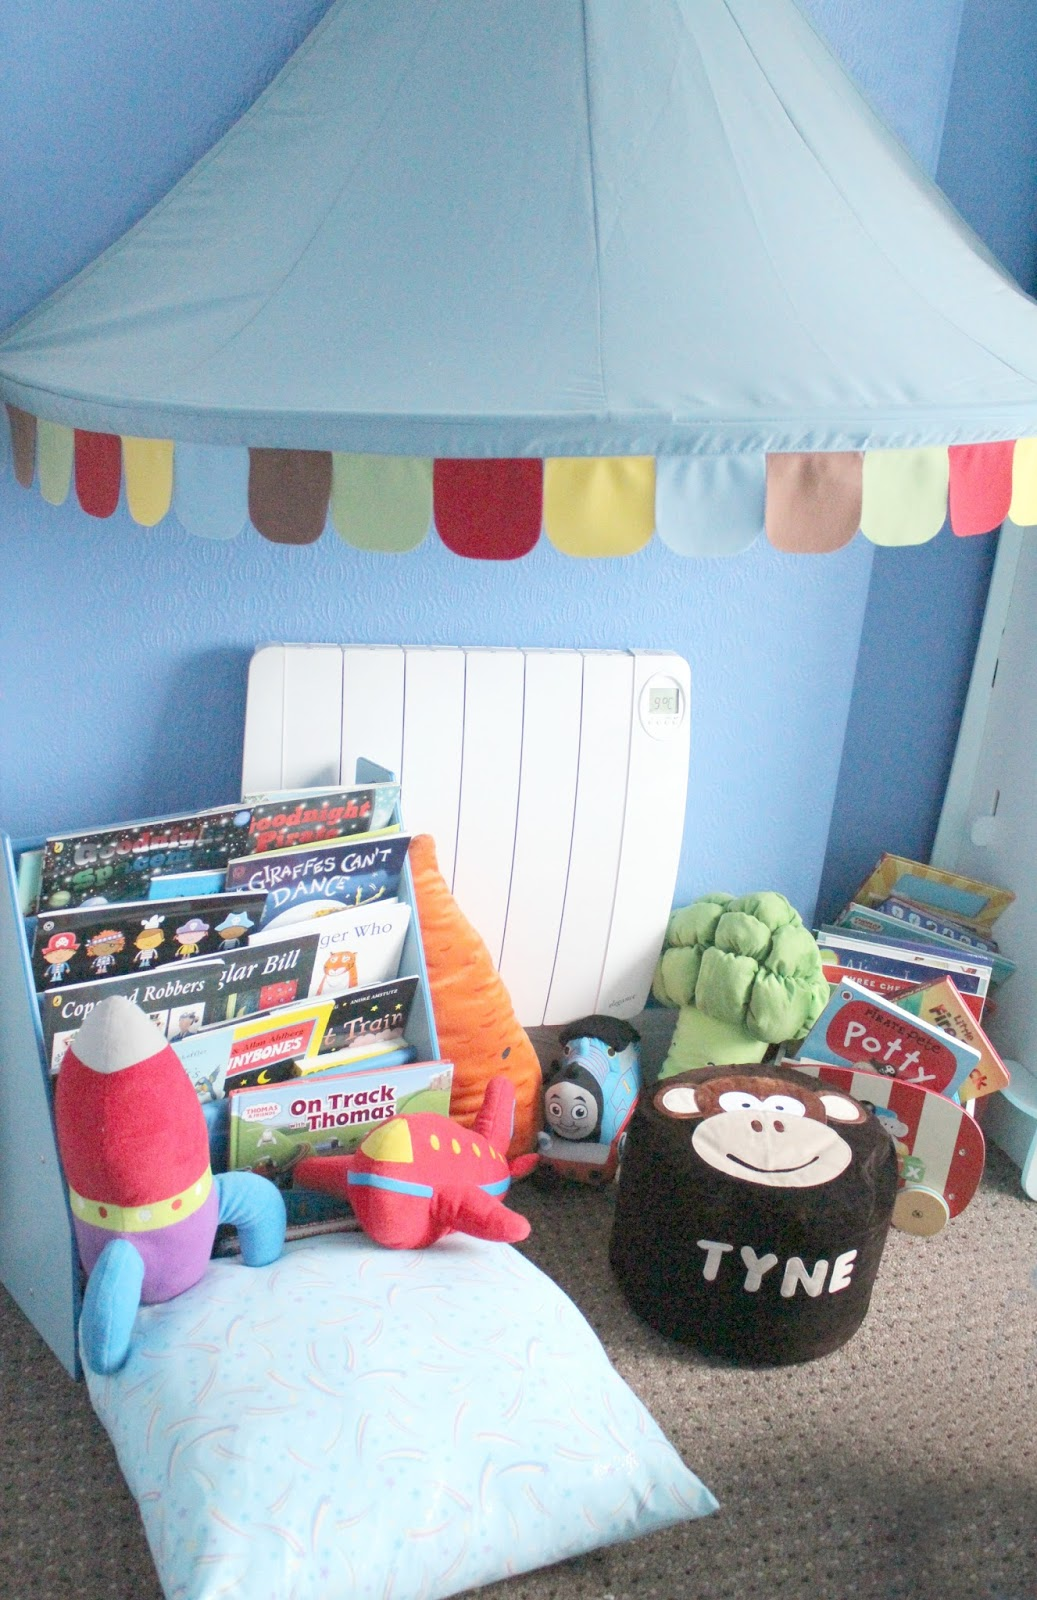 Cute A New Big Boy Bed Bedroom Tour Sparkles u Stretchmarks A UK Parenting u Pregnancy Blog